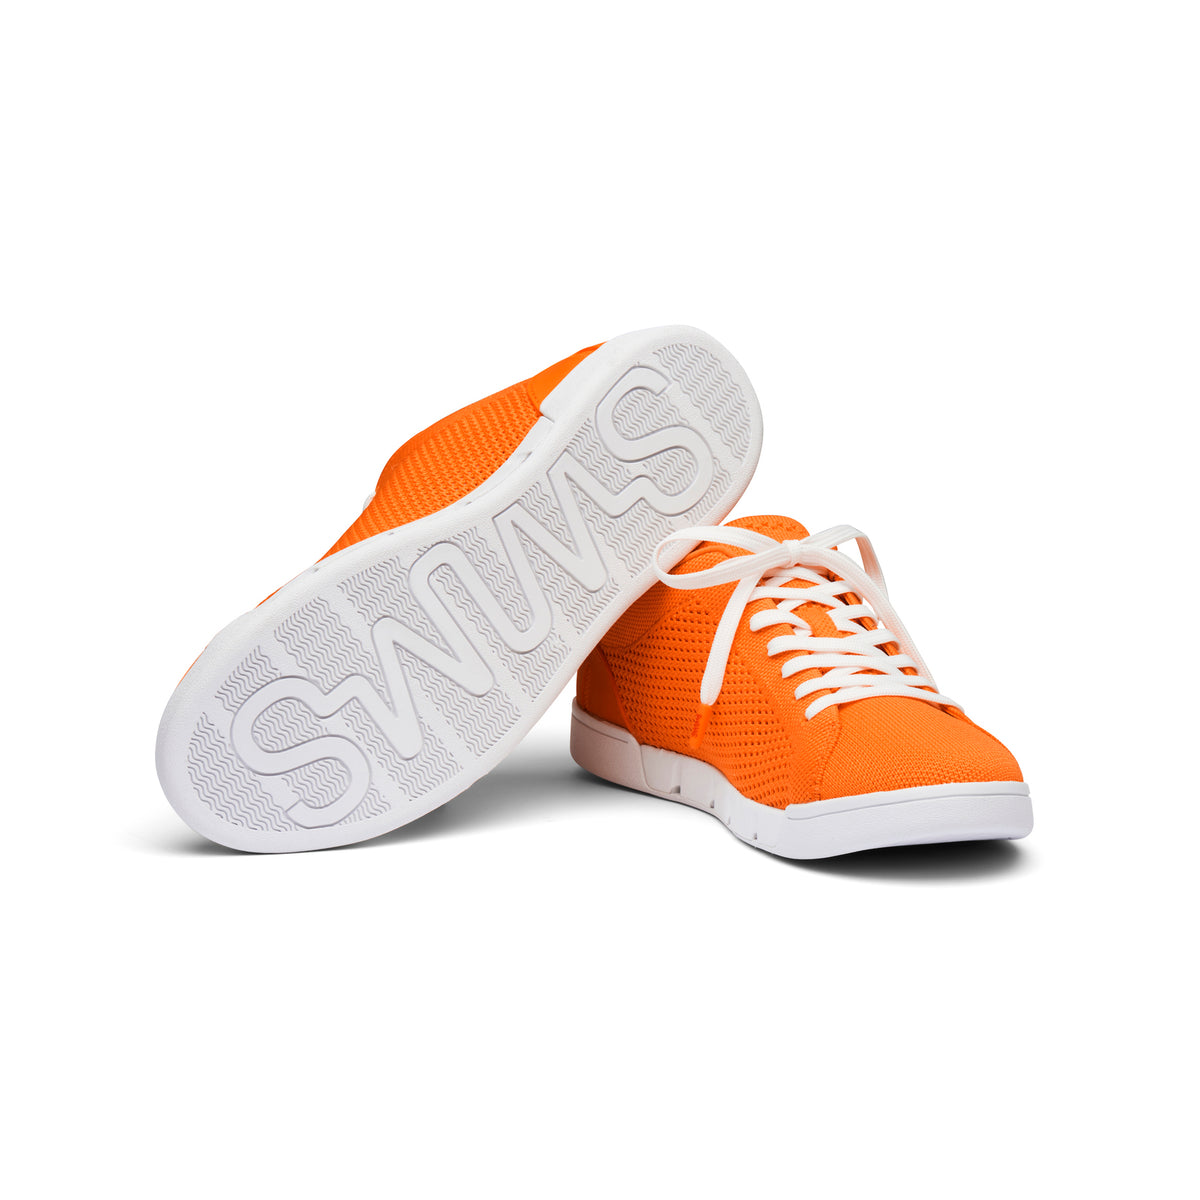 Breeze Tennis Knit - background::white,variant::SWIMS Orange